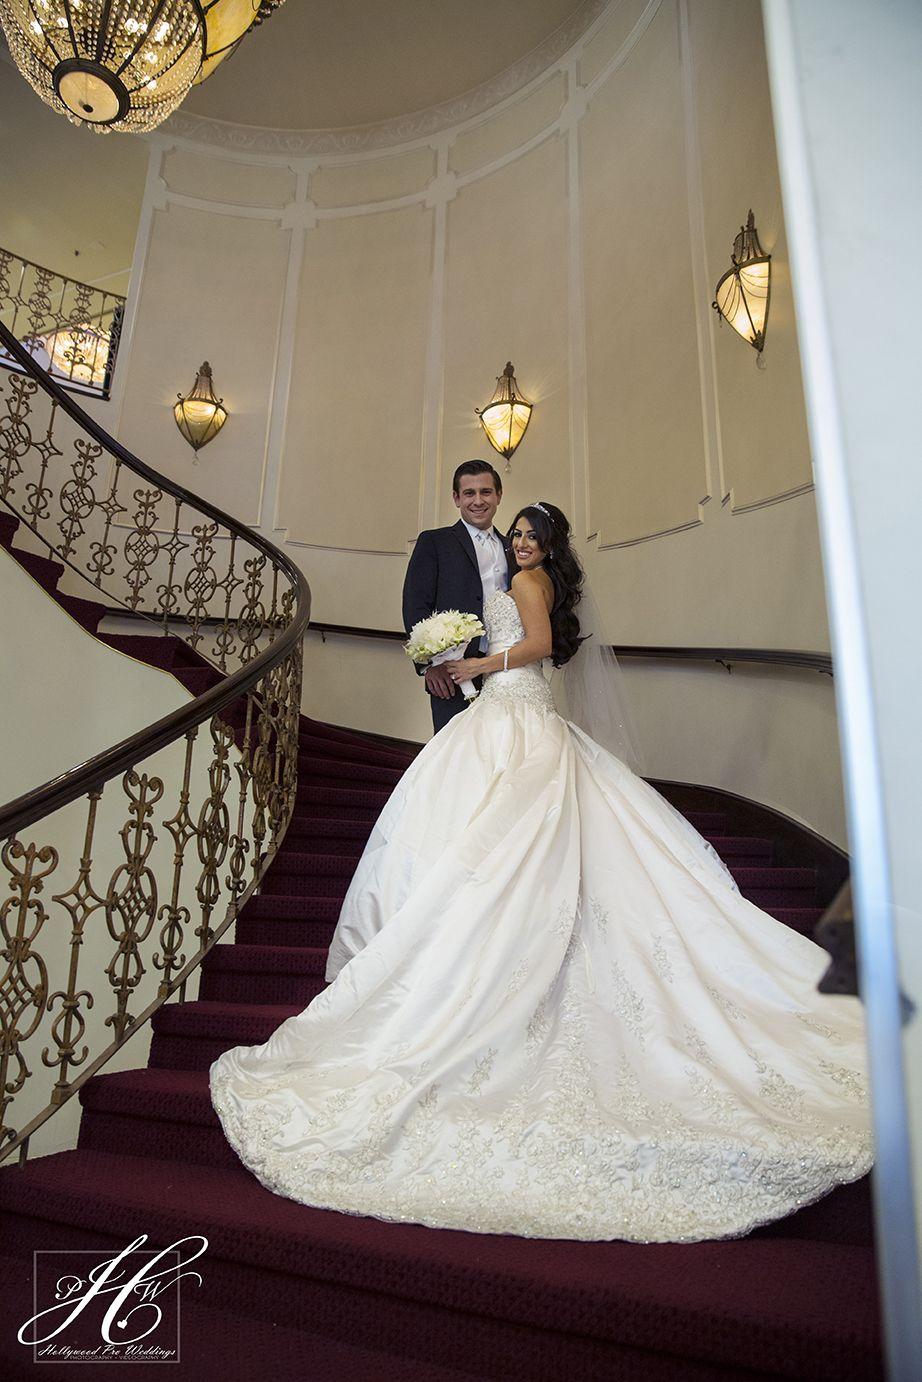 Stairs Makes A Beautiful Place For Wedding Photos Especially If You Have Long Train Such Location Reception In Glendale